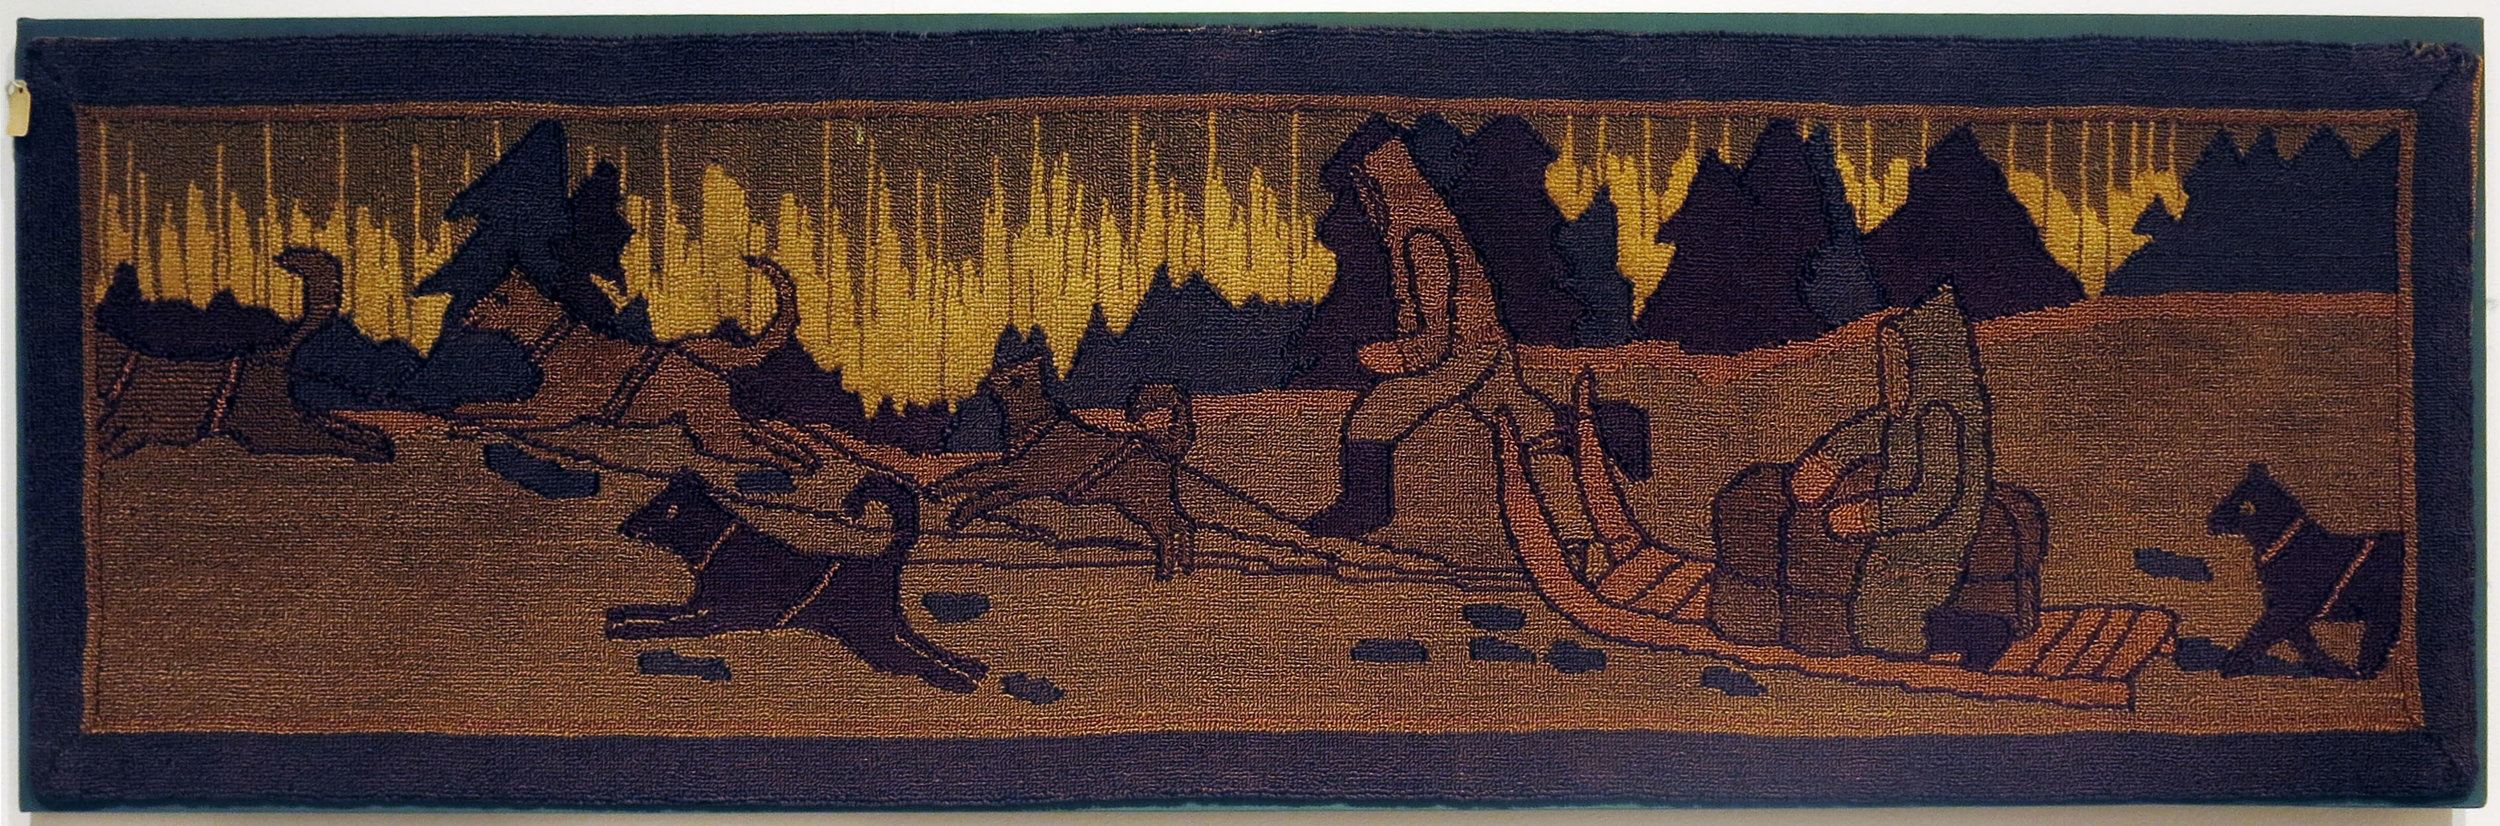 Anonymous, The Grenfell Mission, Dog Team with Northern Lights, produced by 1930, burlap and cotton; dyed, 15h x 49w in.